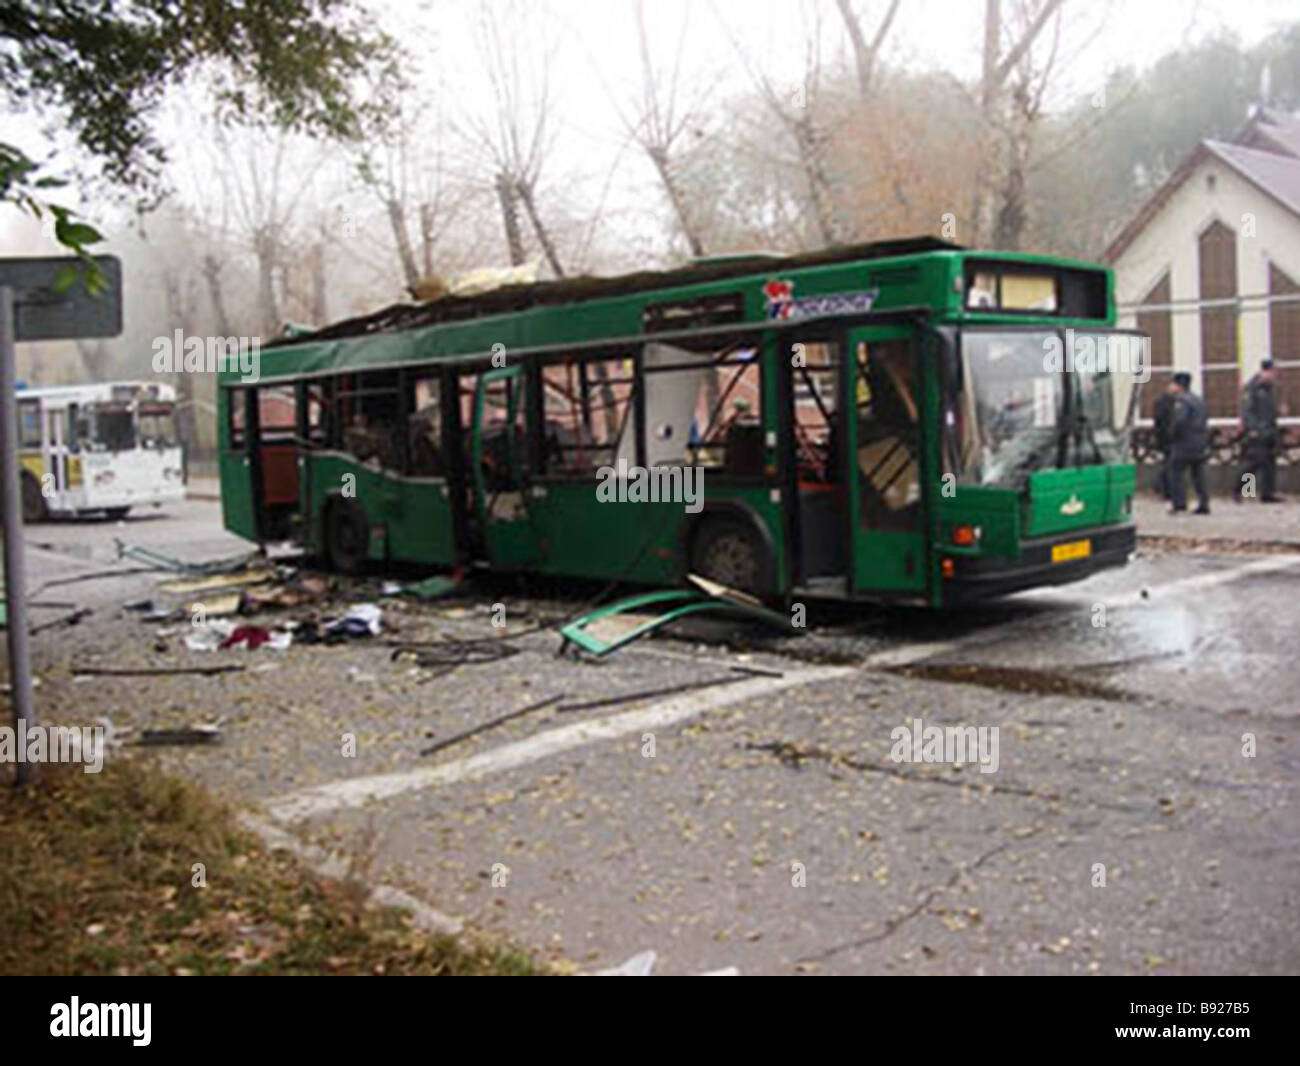 Eight people including one child were killed when a bus exploded in downtown Togliatti - Stock Image